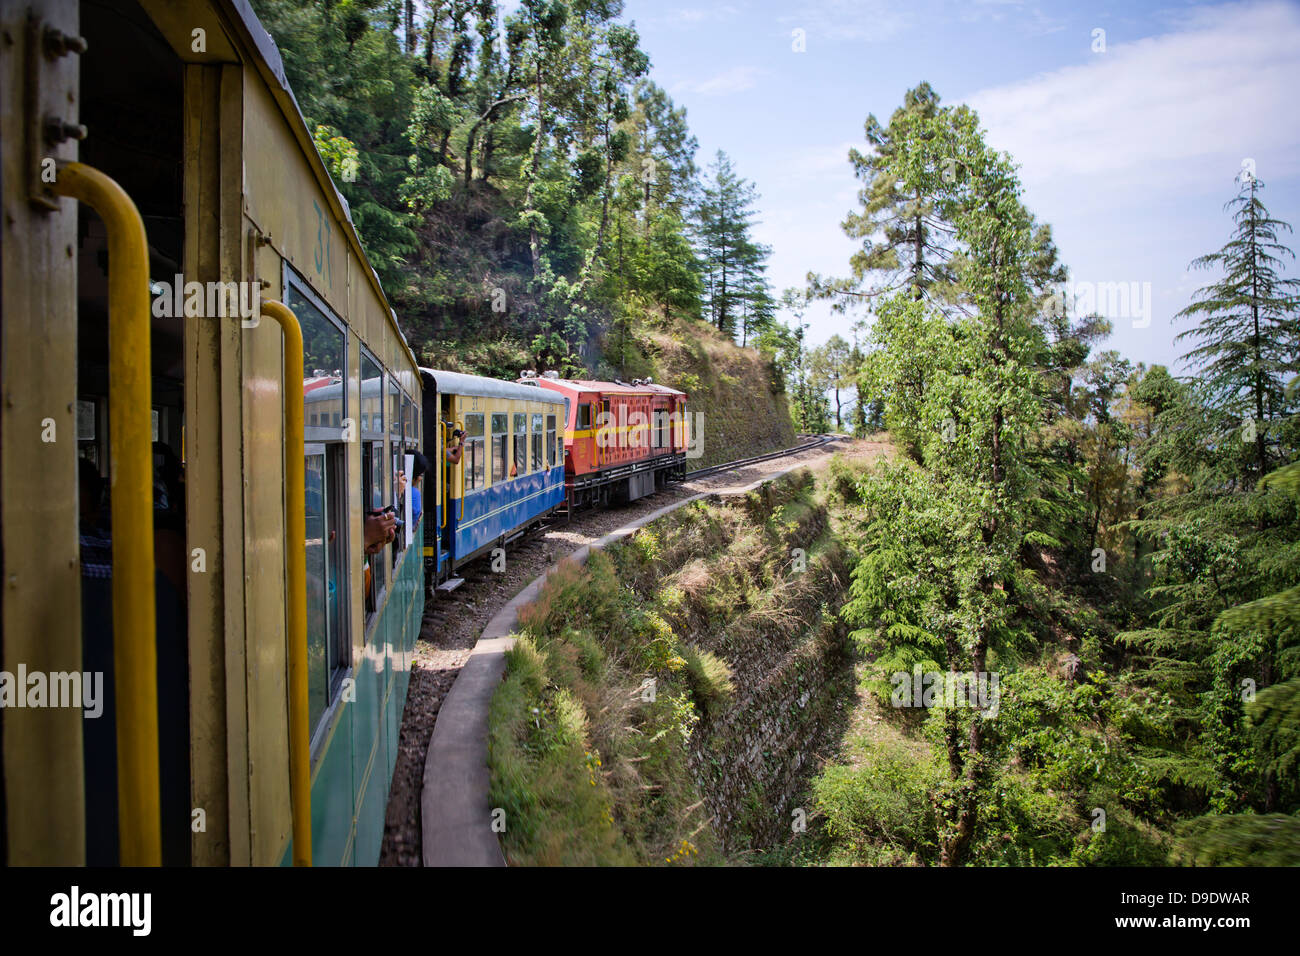 Train moving on railroad track in valley, Shimla, Himachal Pradesh, India - Stock Image